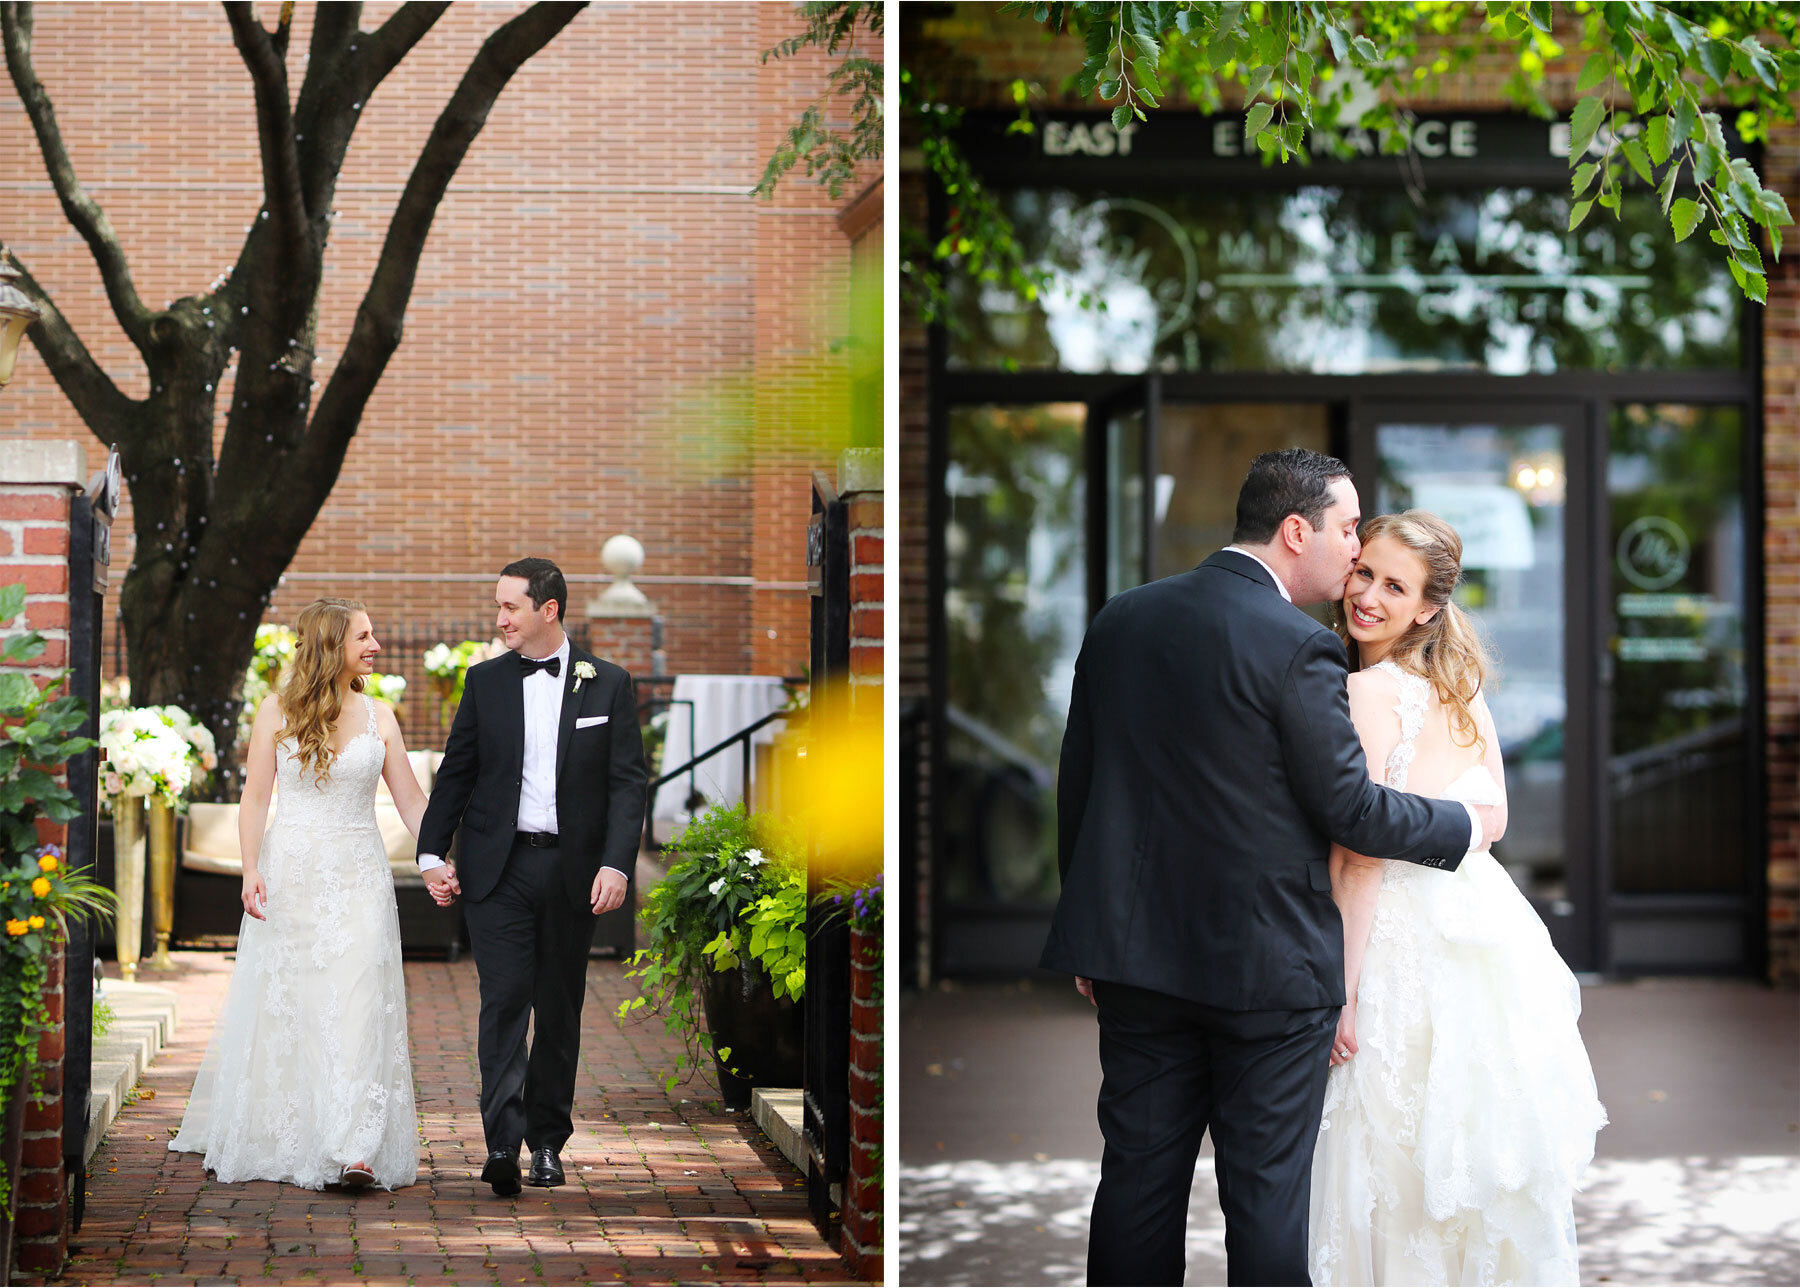 04-Minnesota-Wedding-Vick-Photography-Minneapolis-Event-Centers-Bride-Groom-First-Look-Courtyard-Amy-and-Avi.jpg